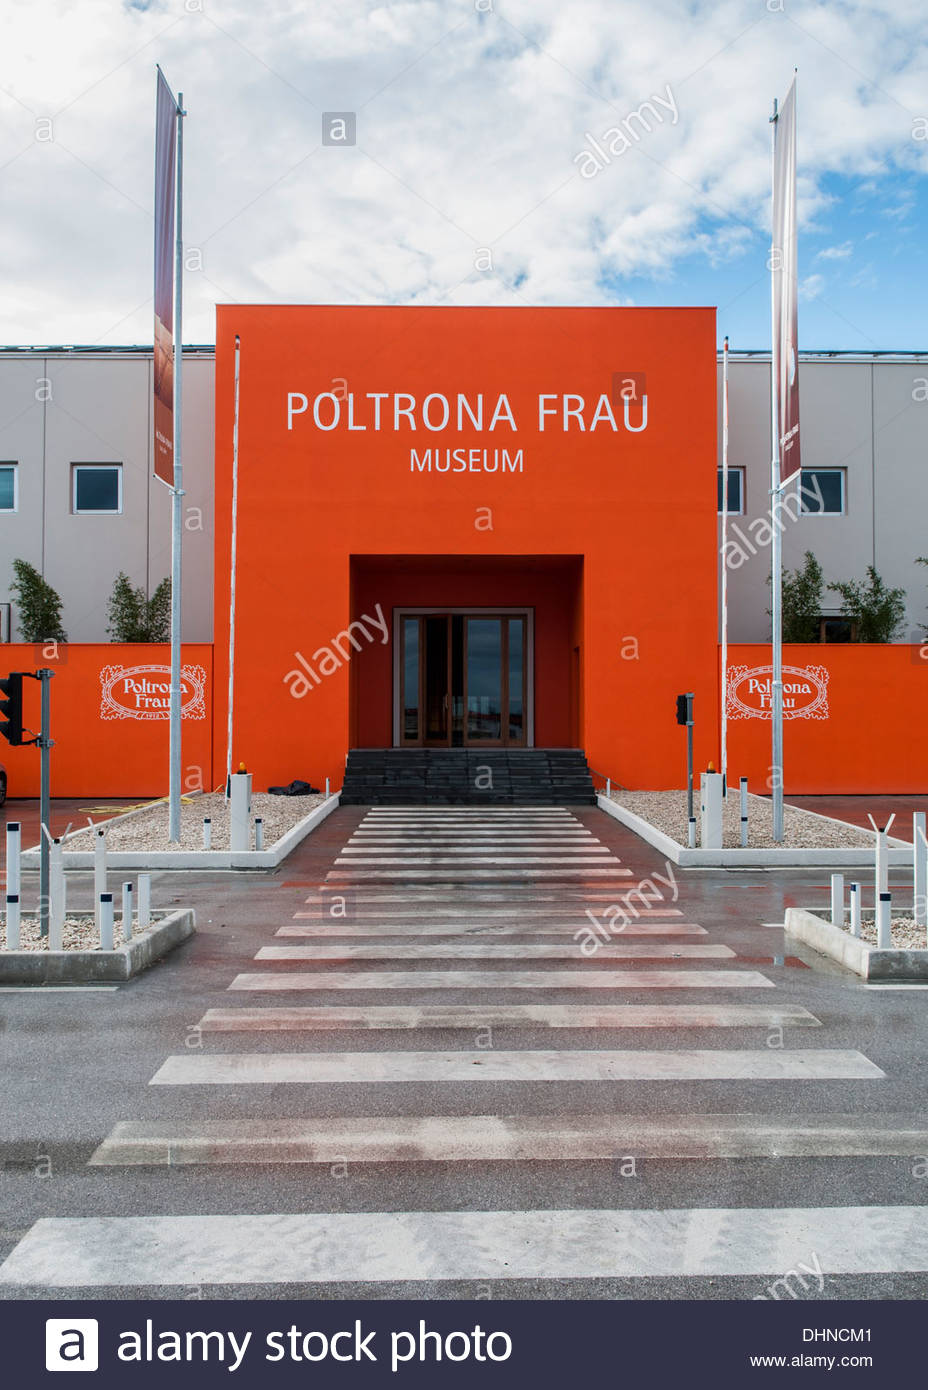 Poltrona Frau Museum,tolentino,marche,italy Stock Photo, Royalty ...